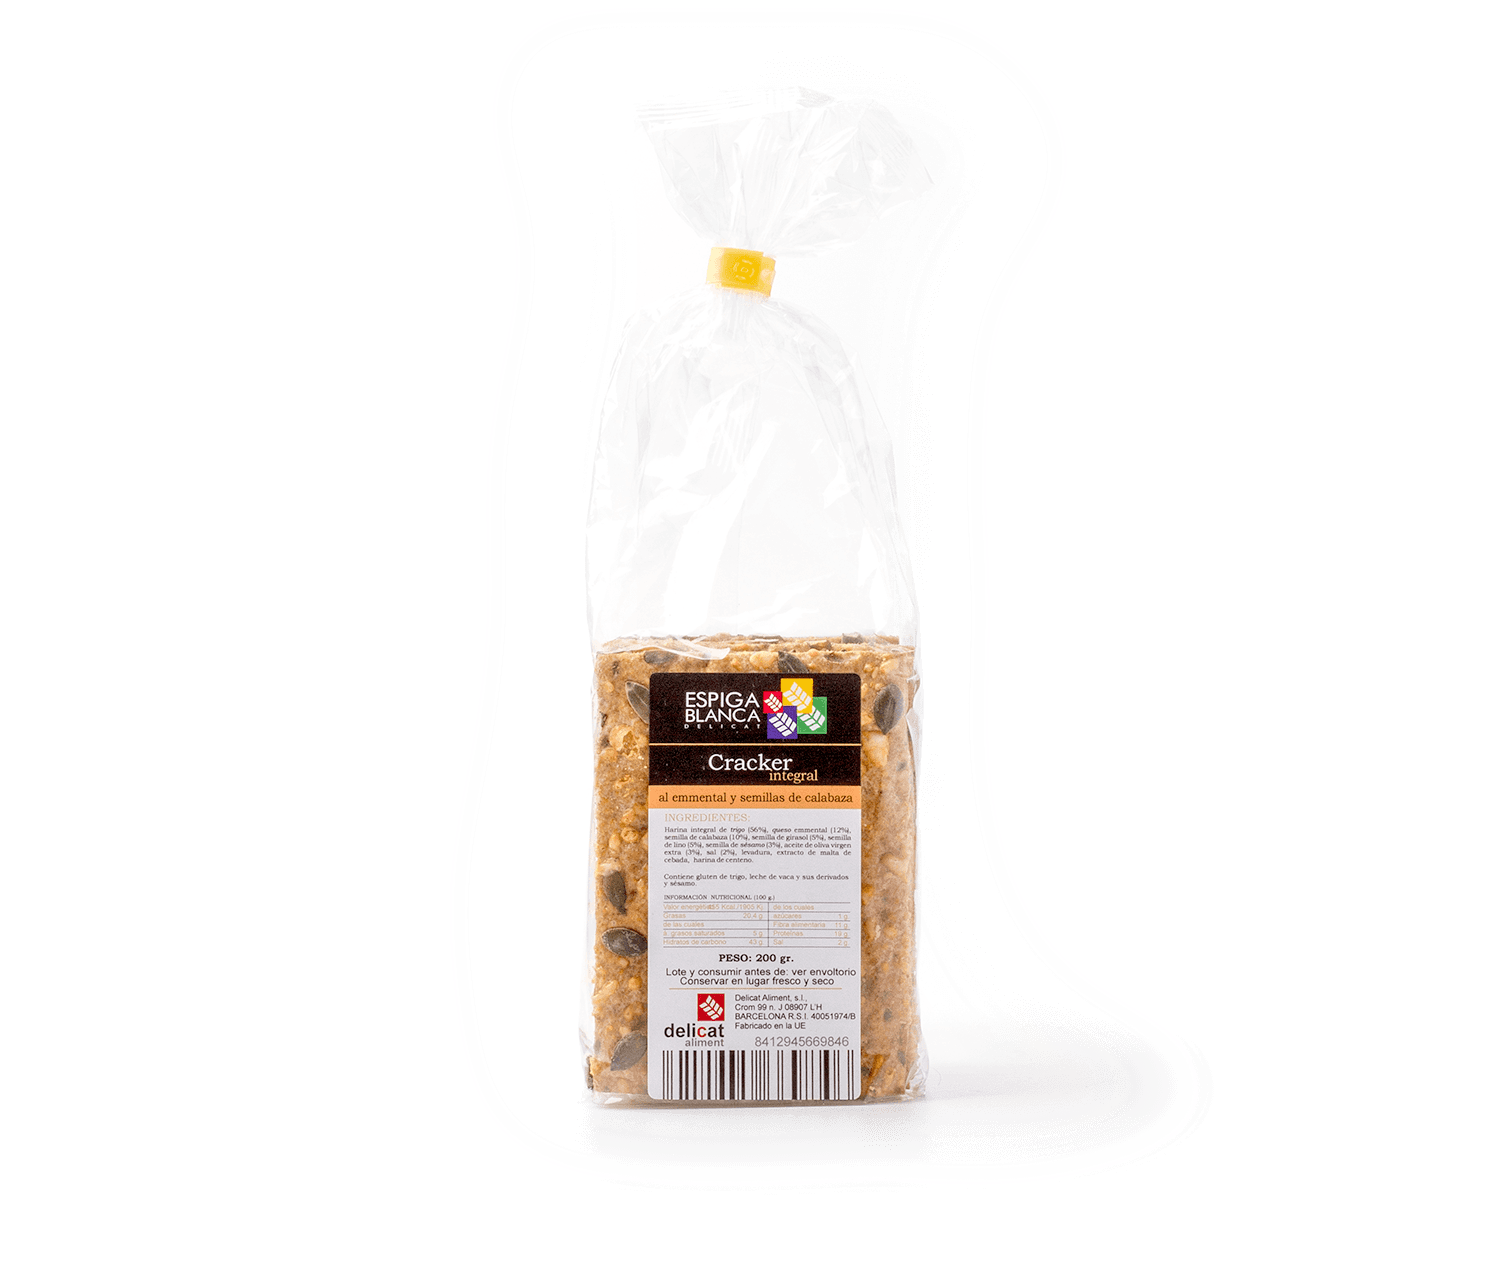 Cracker emmental llavors E.Blanca 200g